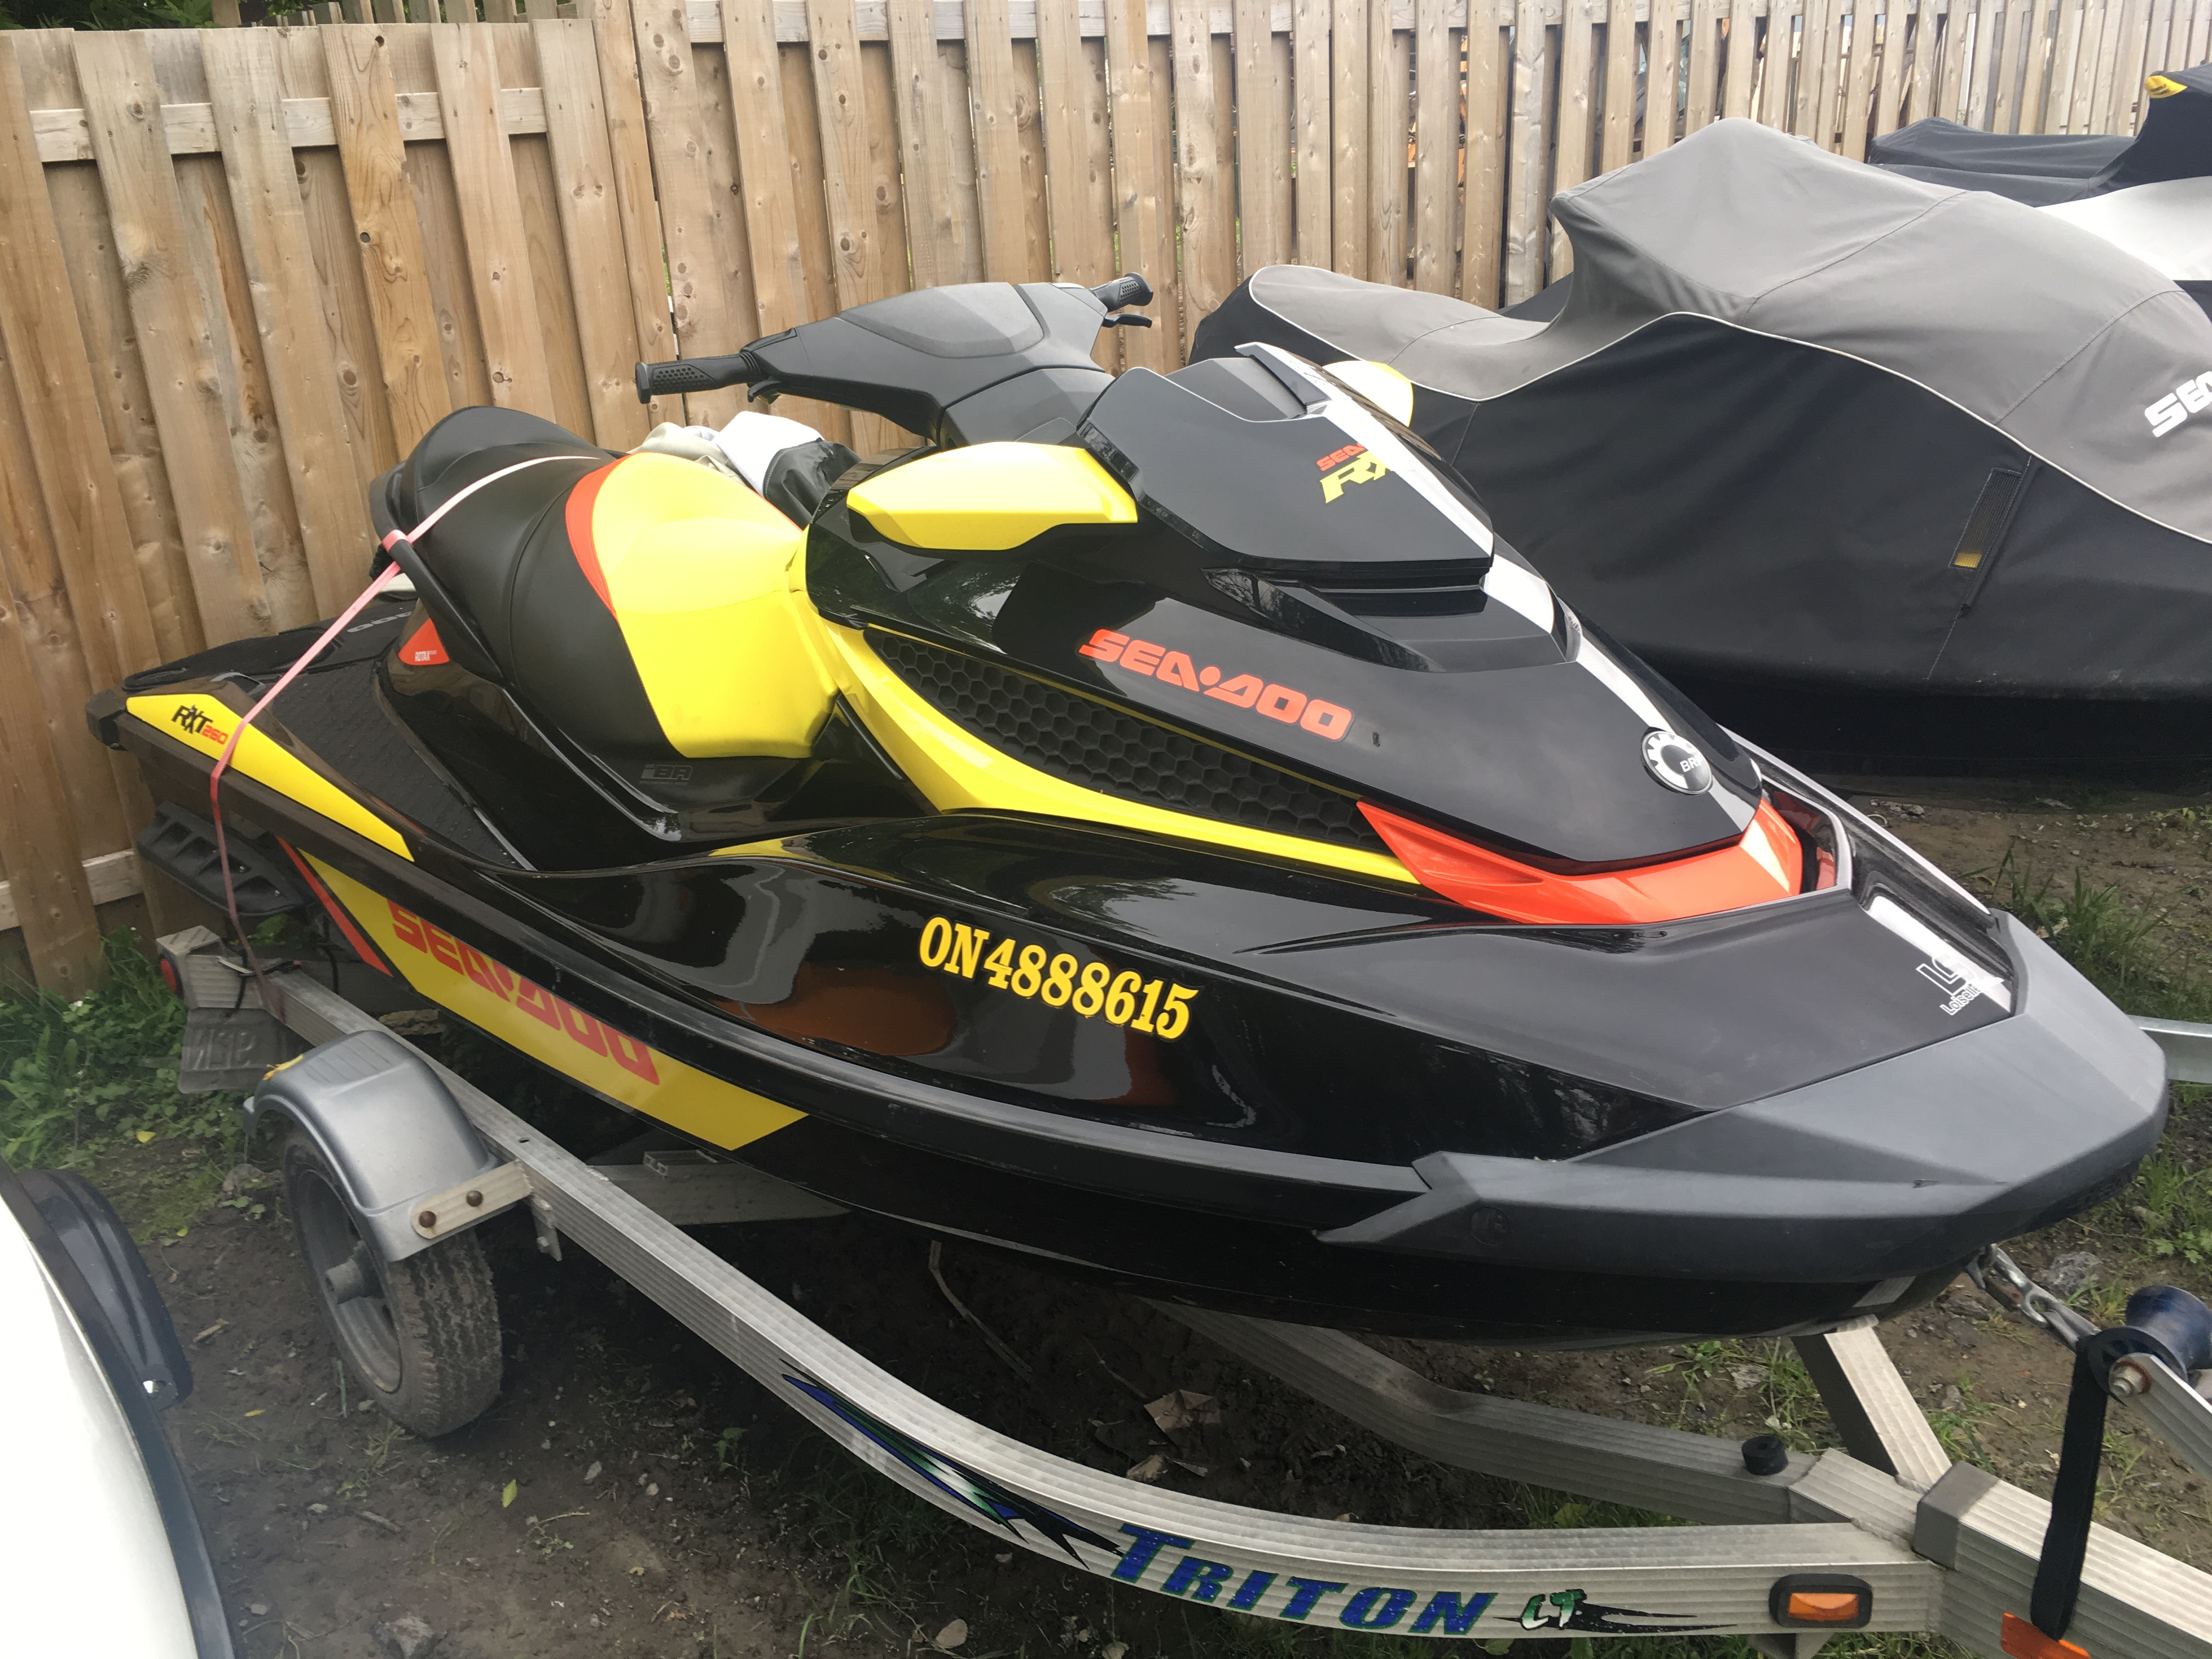 2015 Sea-doo RXT 260 Black-Yellow-Red for sale in Ottawa